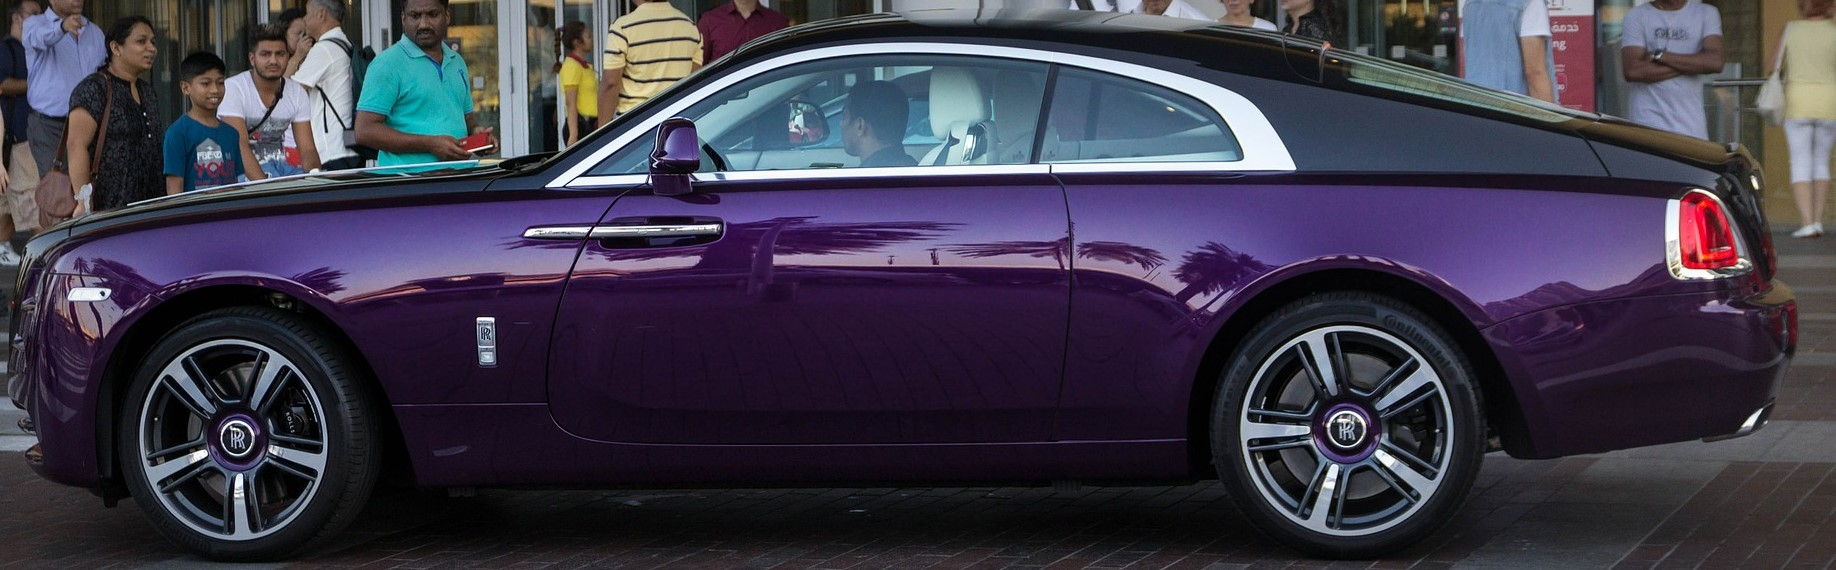 Purple Bentley in Jessup, Maryland | Breast Cancer Car Donations